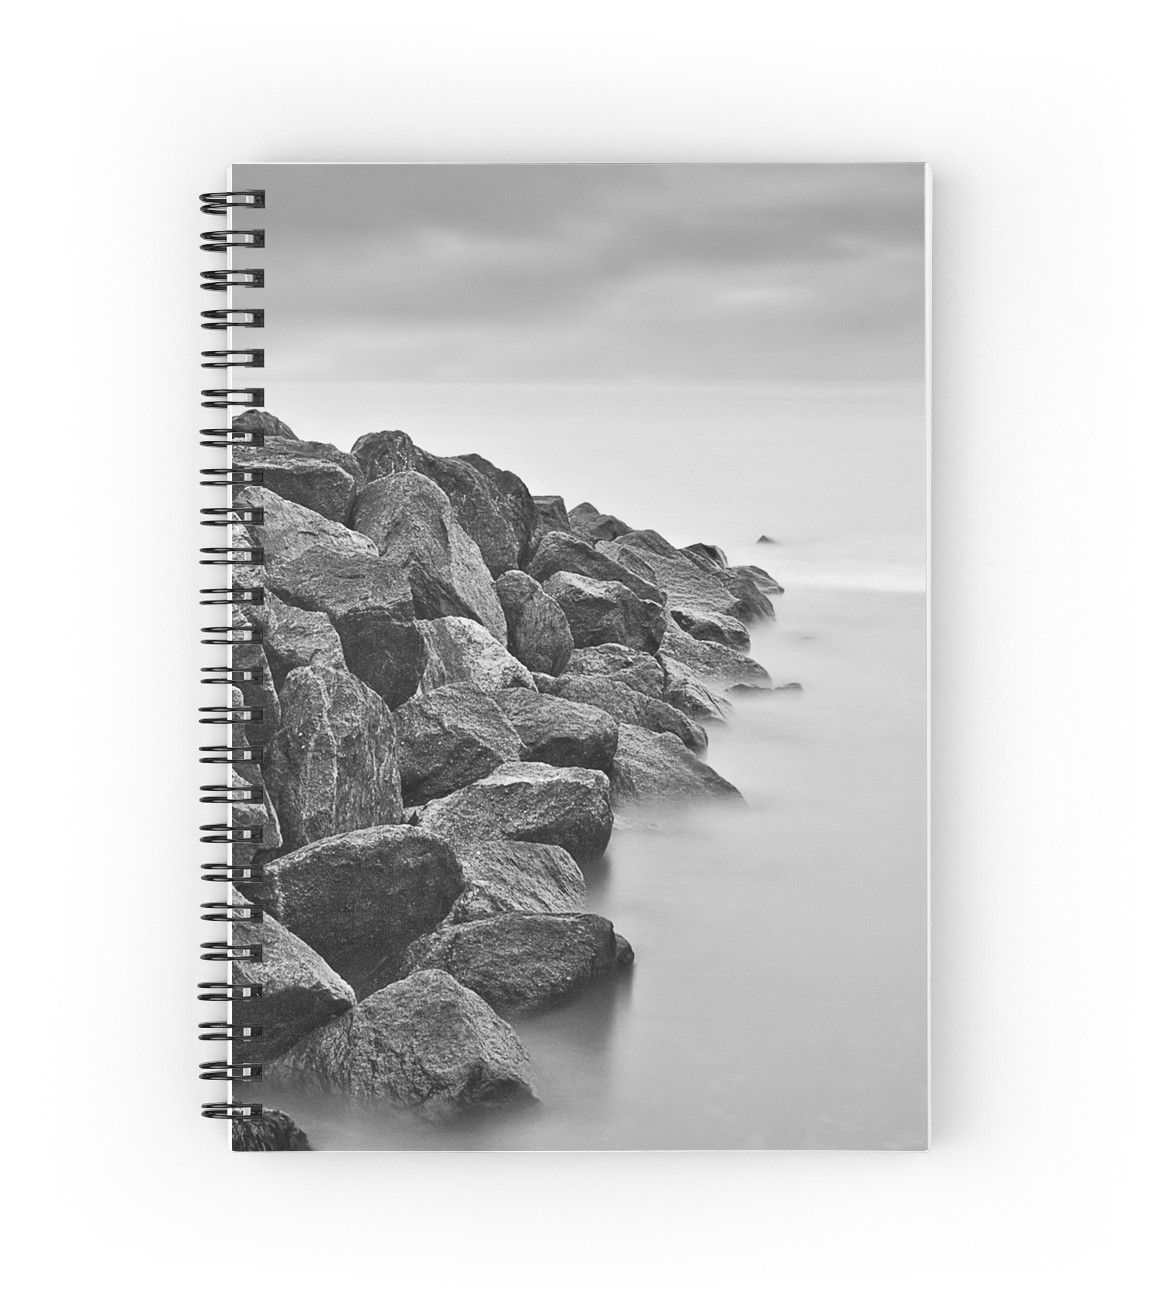 Calm Waters - Notebook #notebook #pad #stationery #paper #book #notepad #ocean #sea #blackandwhite #rocks #student